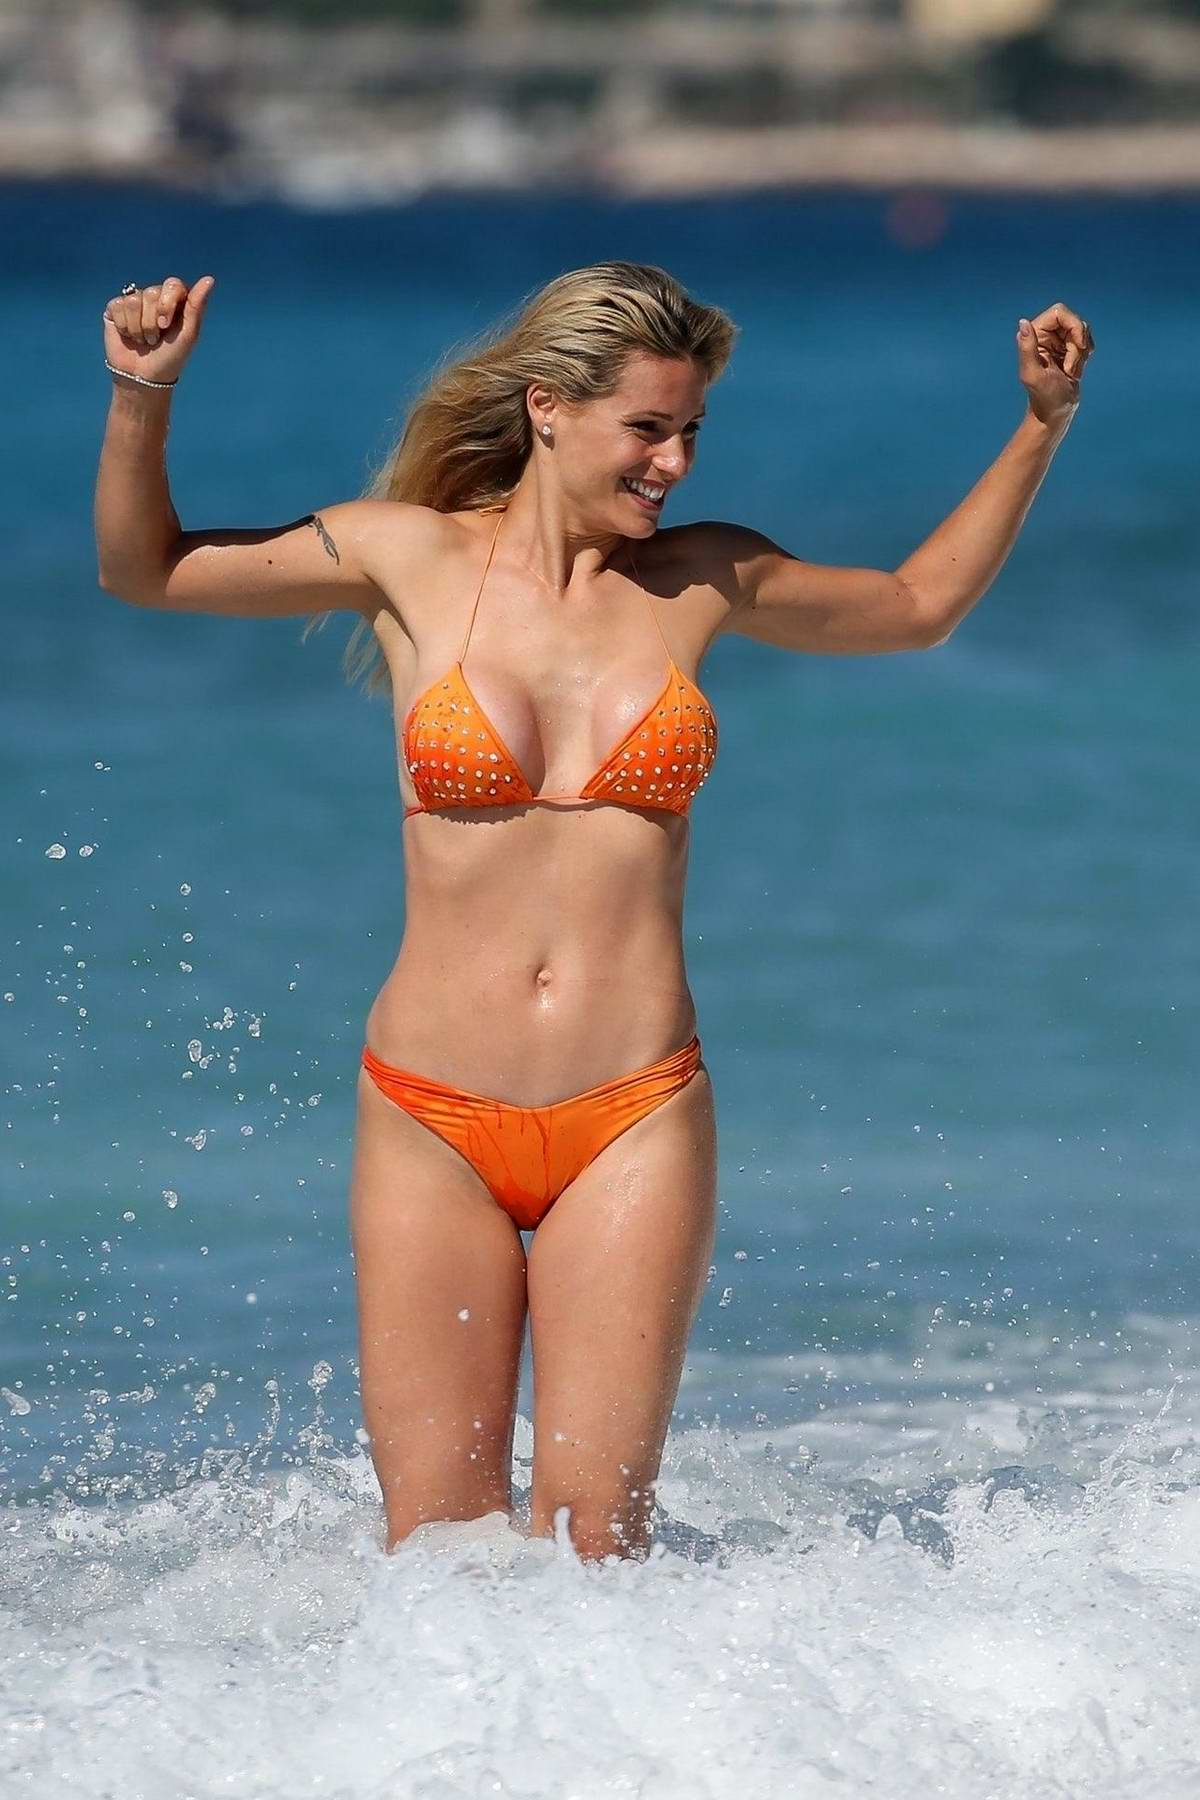 Michelle Hunziker en bikini orange